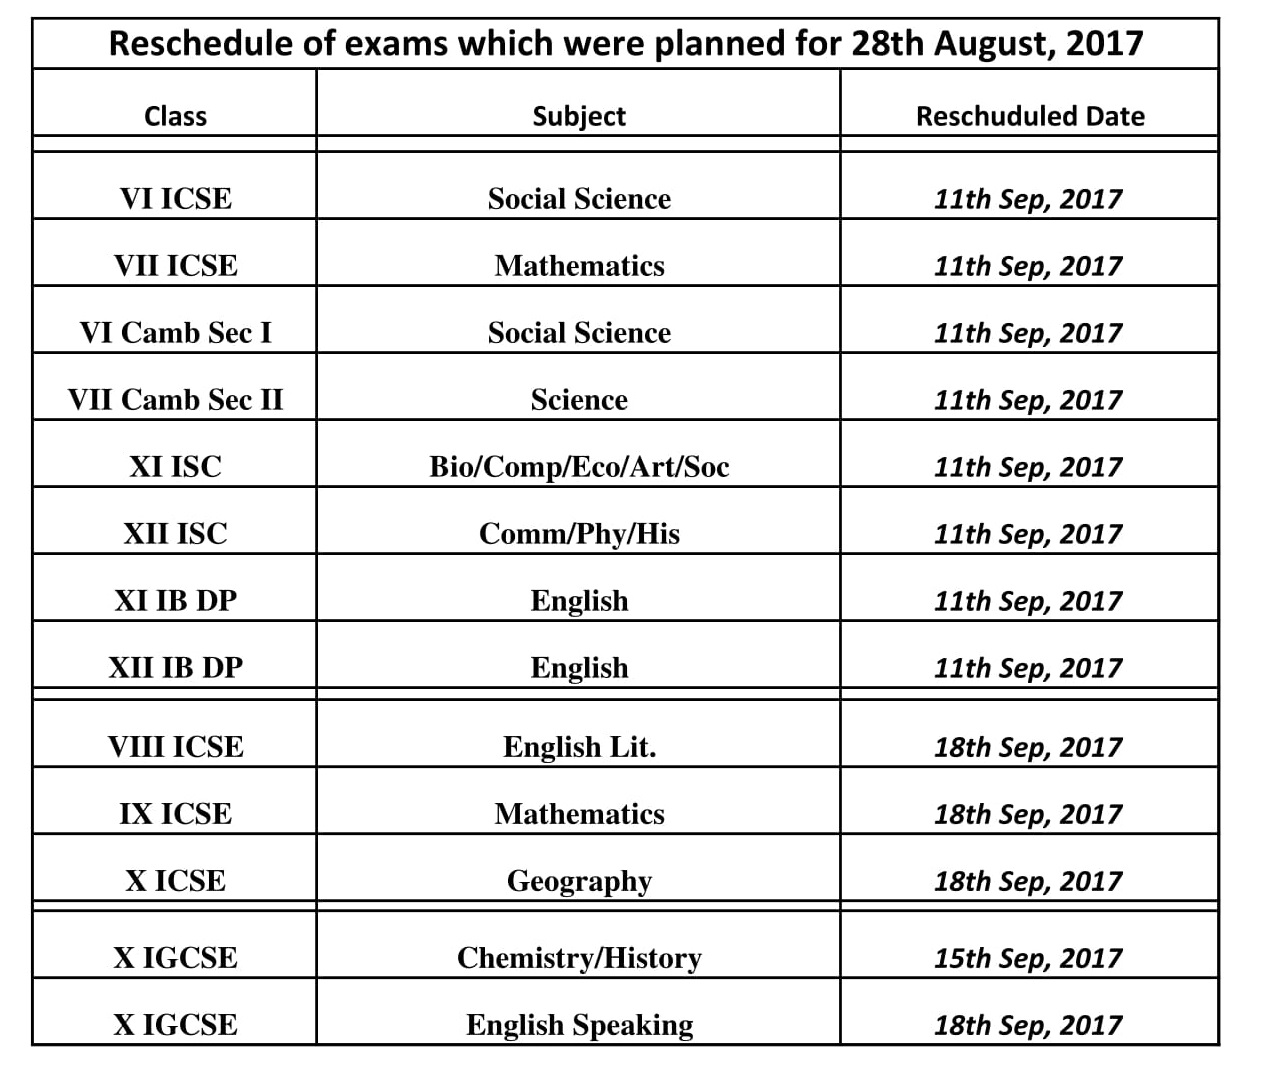 Reschedule of 28th August Exam